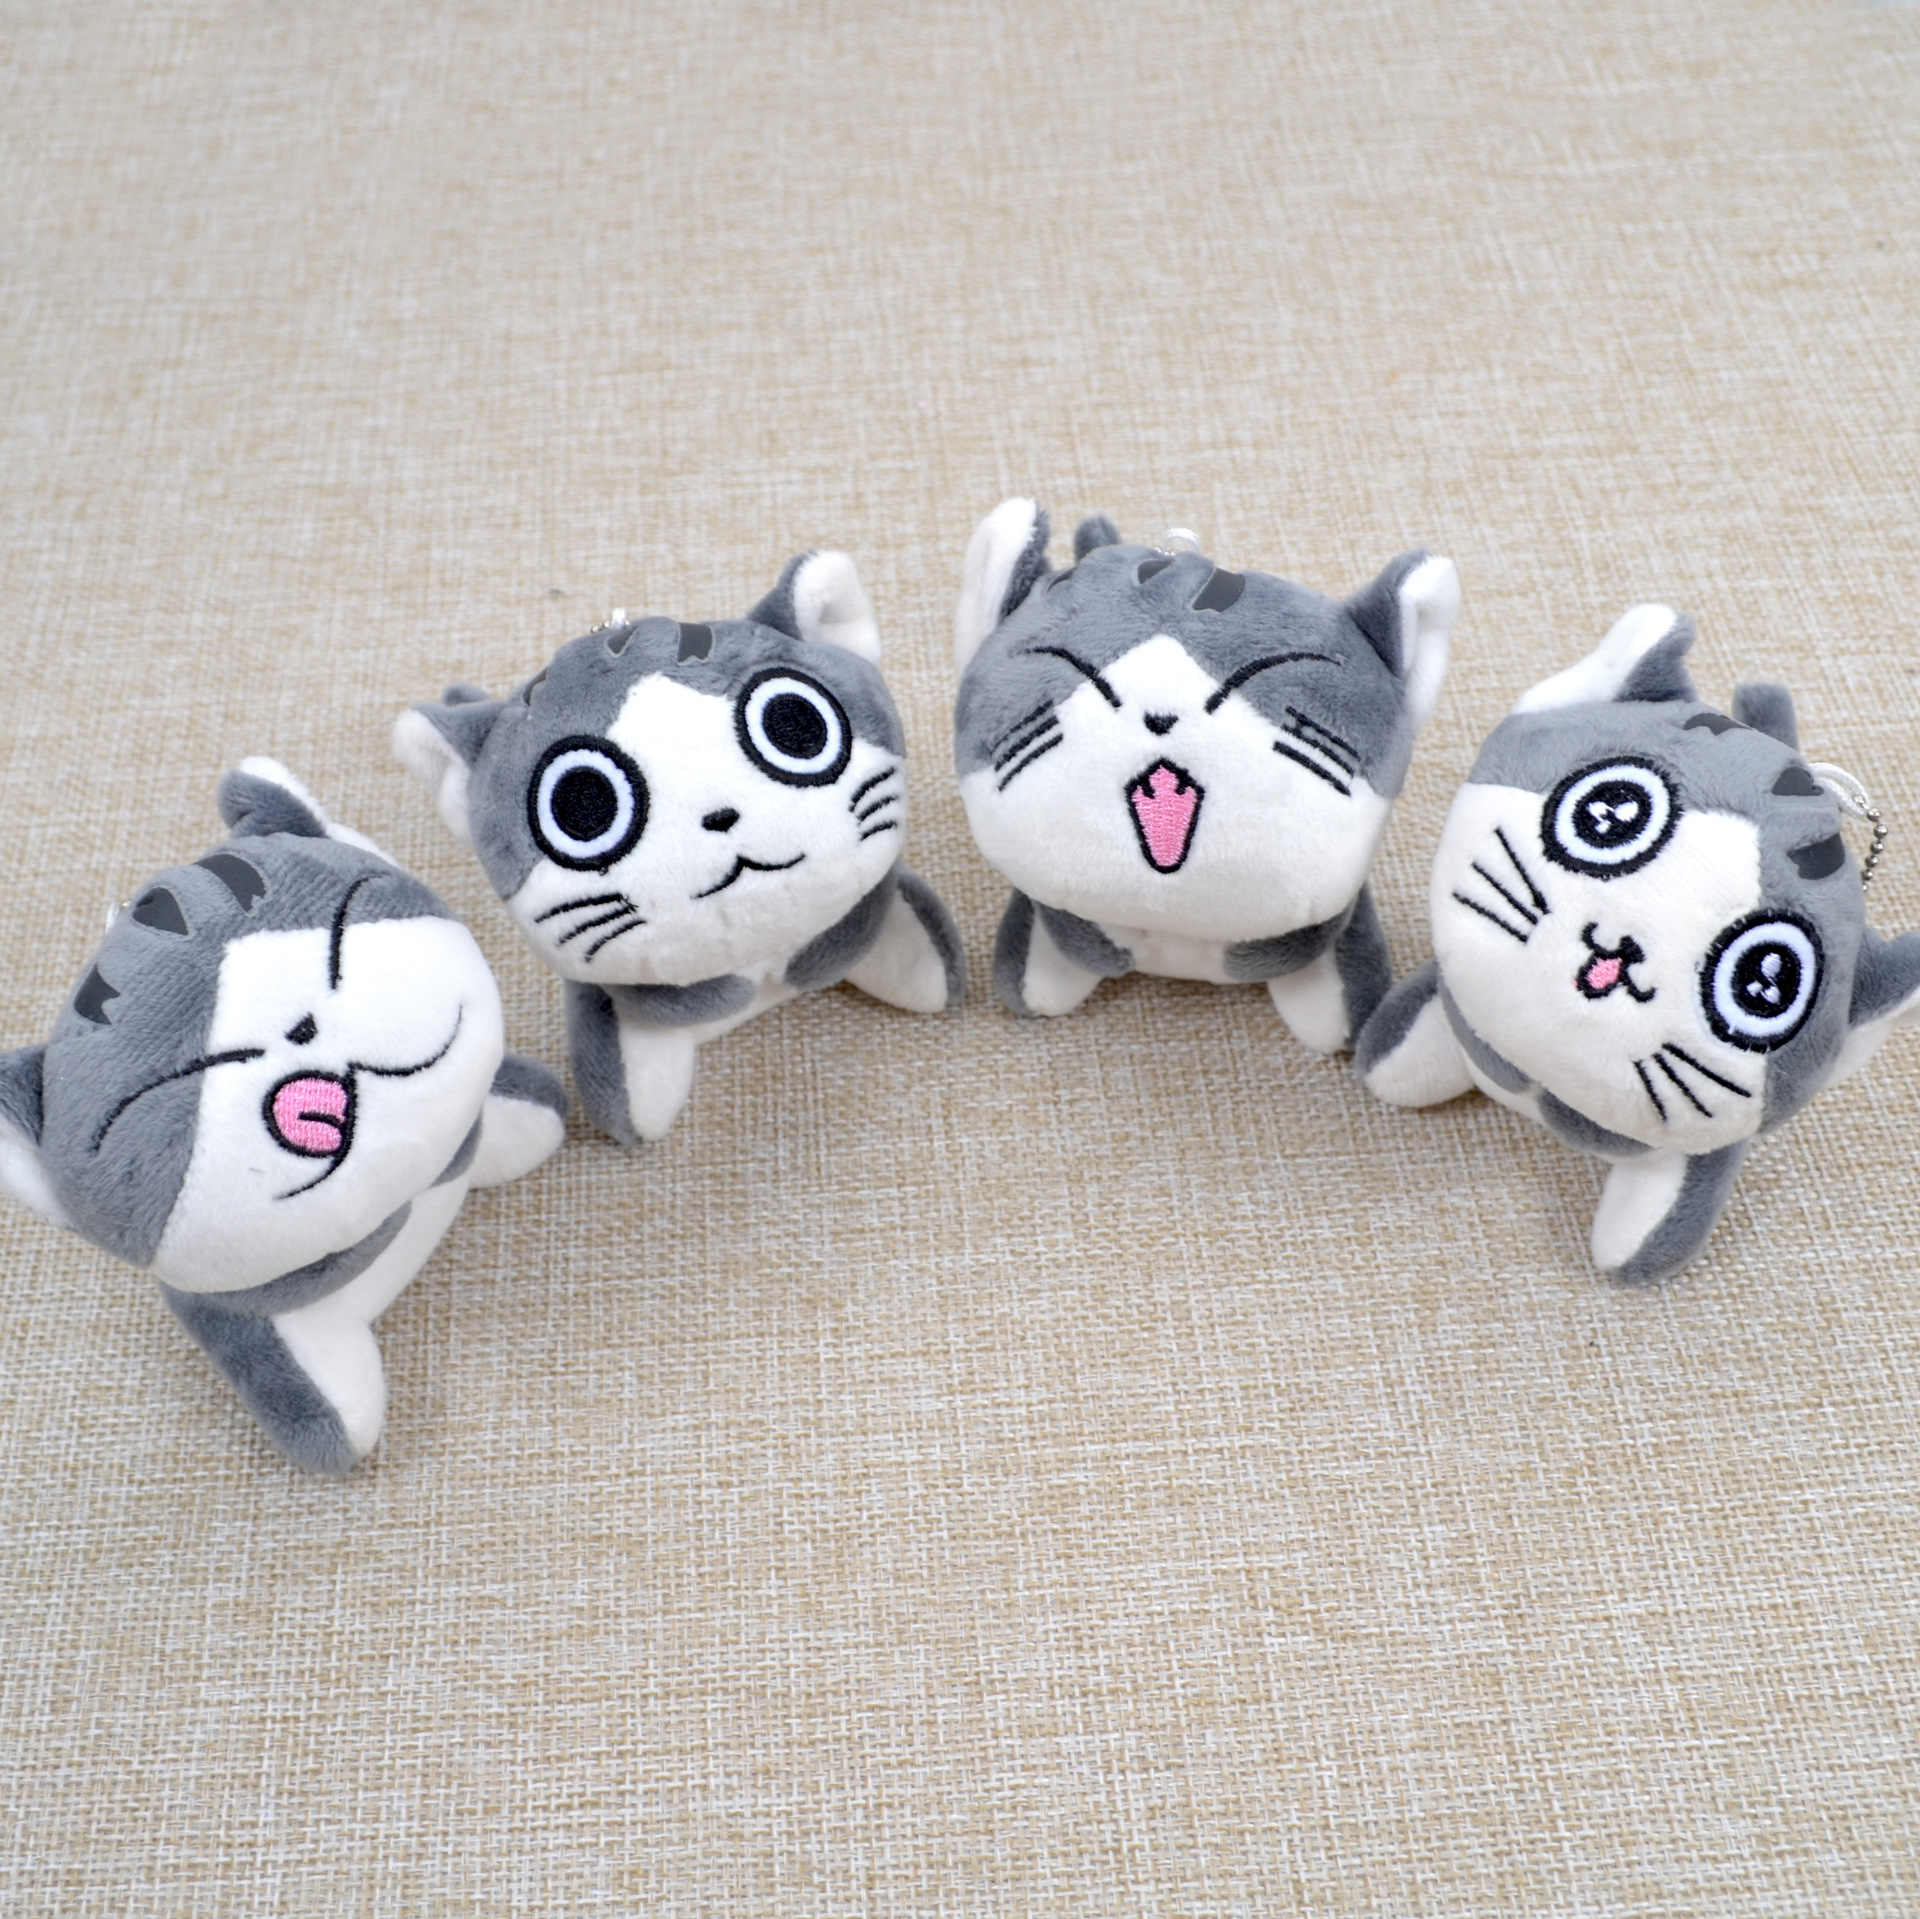 10cm Kawaii Soft Plush Cat Doll  KeyChain Grey Sitting cat Plush Stuffed Toys Bouquet Gift Plush TOY Stuffed Cat Doll Gift